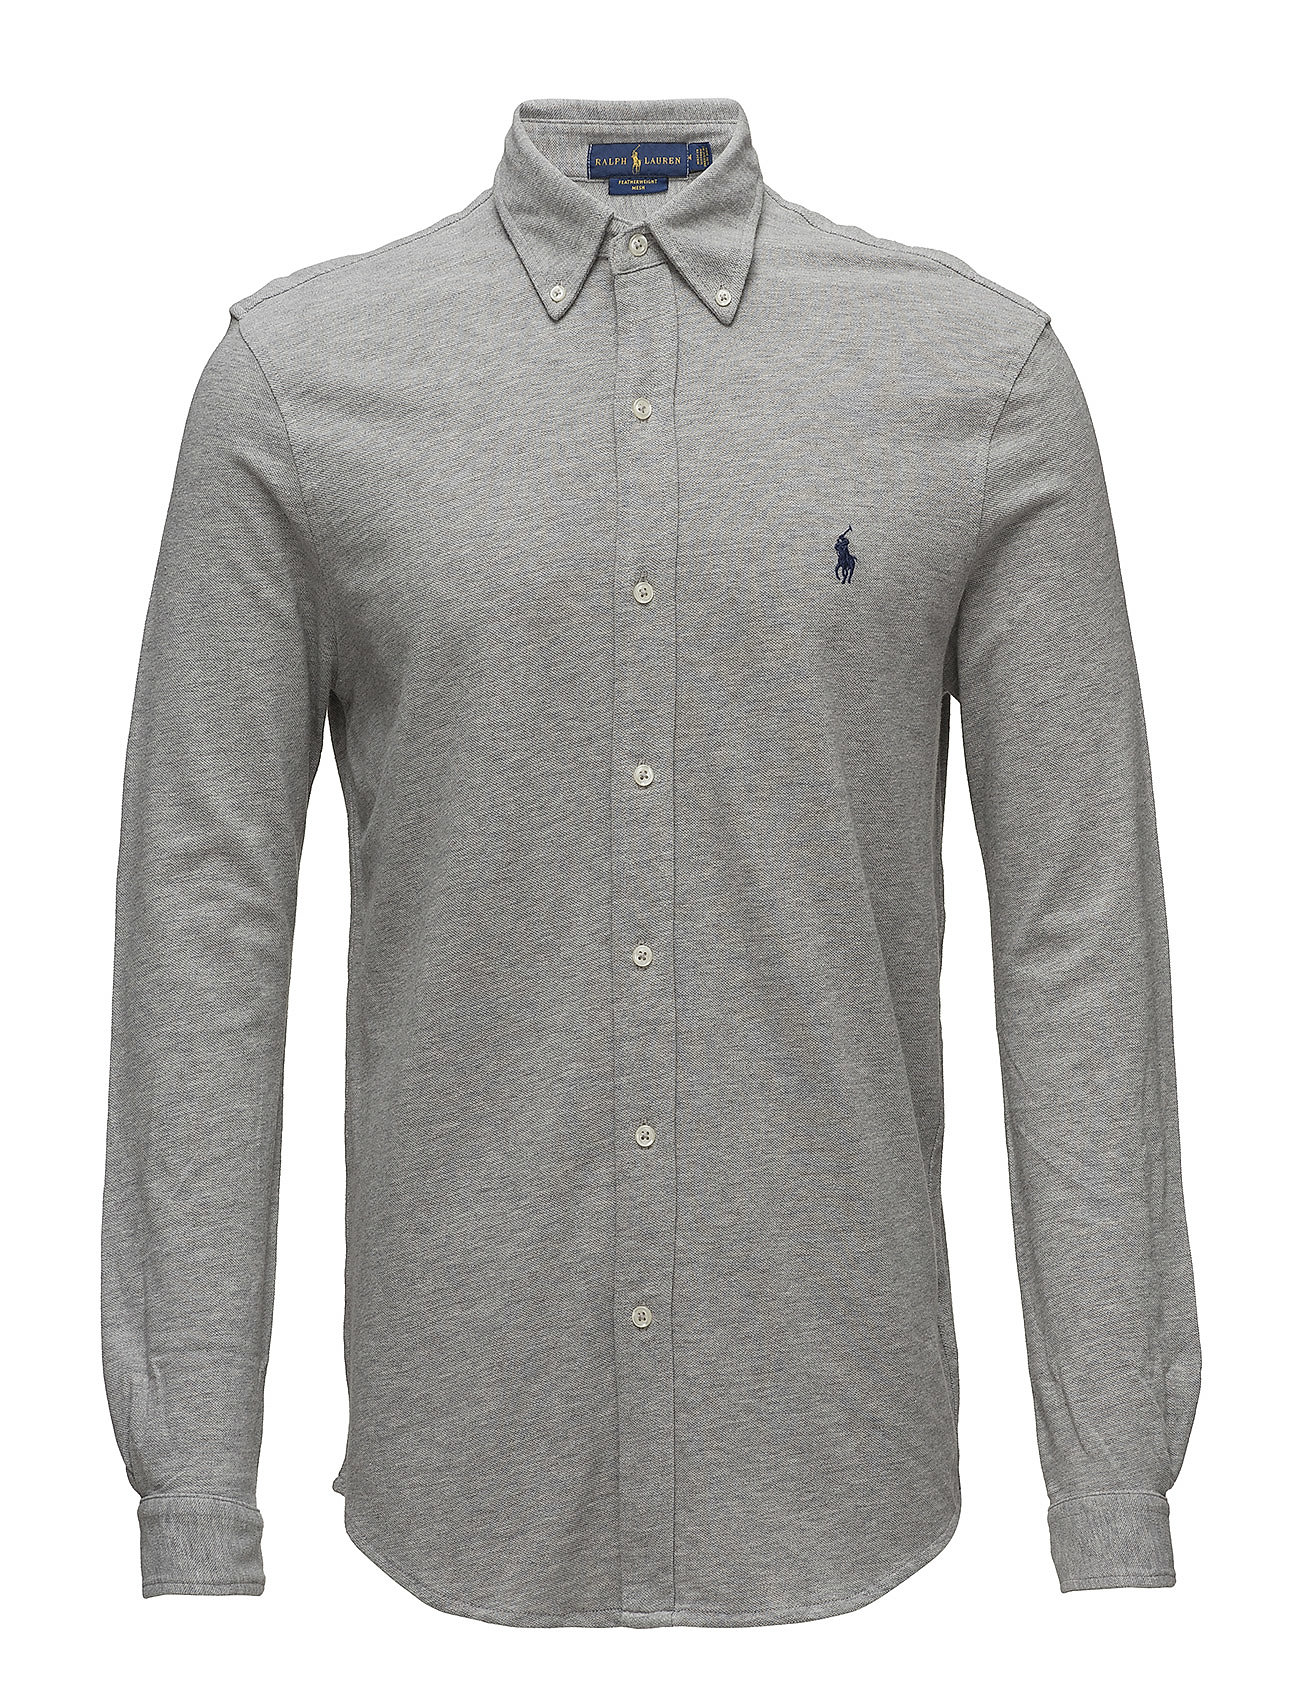 Polo Ralph Lauren Featherweight Mesh Shirt